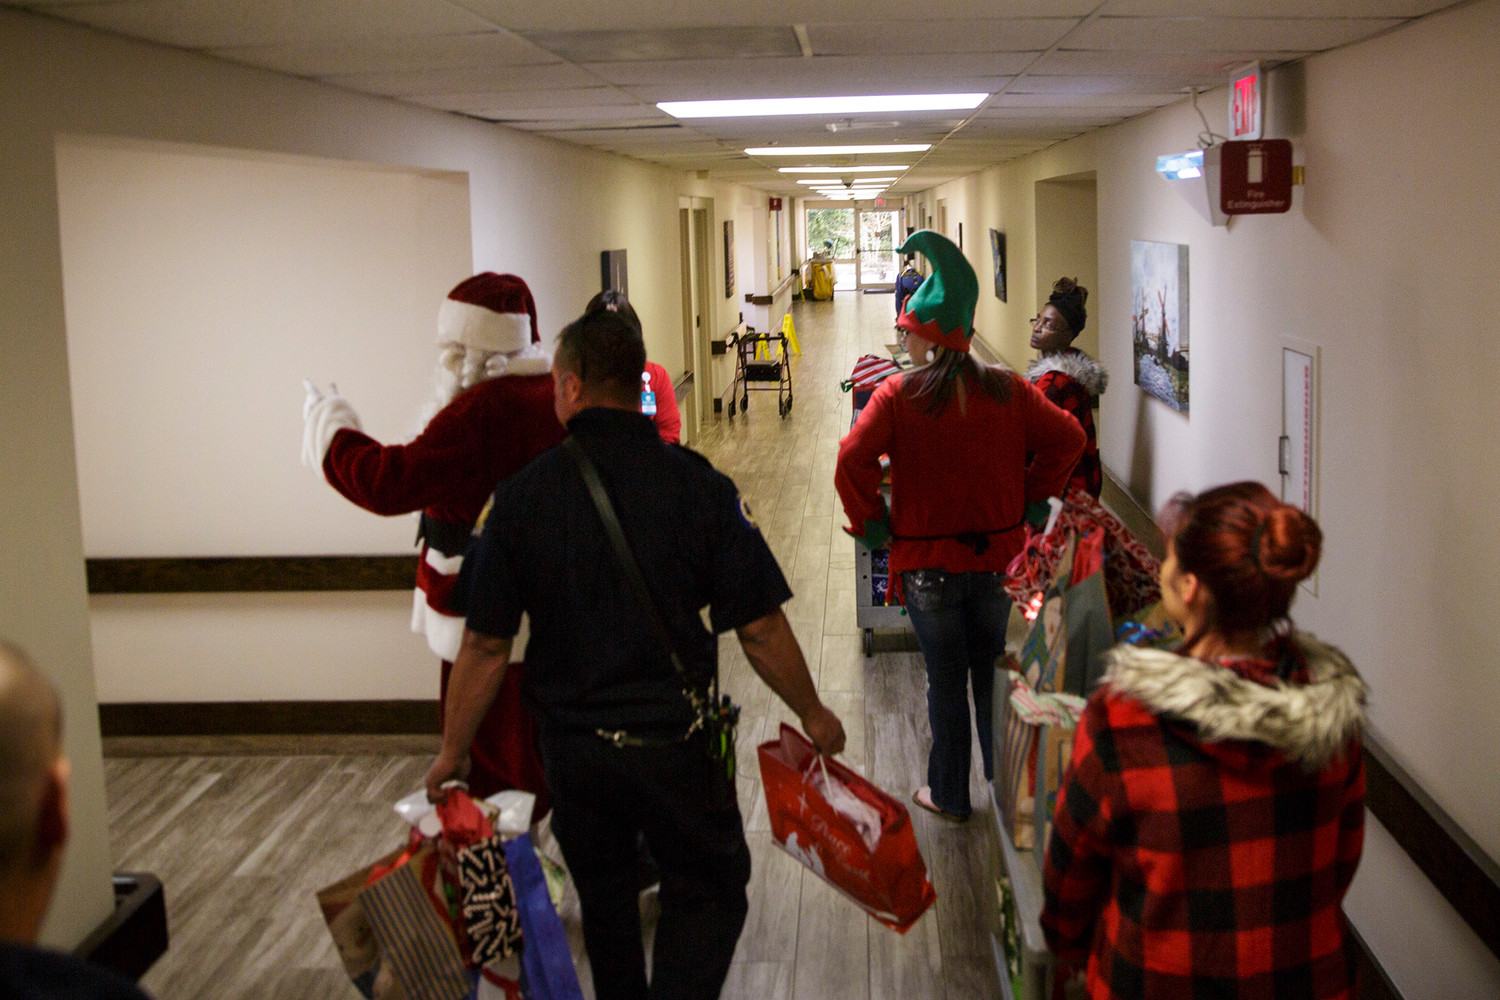 Members of Orange Park's fire and police forces make their way down the hall at Oak View Rehabilitation Center Thursday while carrying out gift deliveries for the annual Home Instead effort to put Christmas gifts into the hands of Clay County's elderly population.